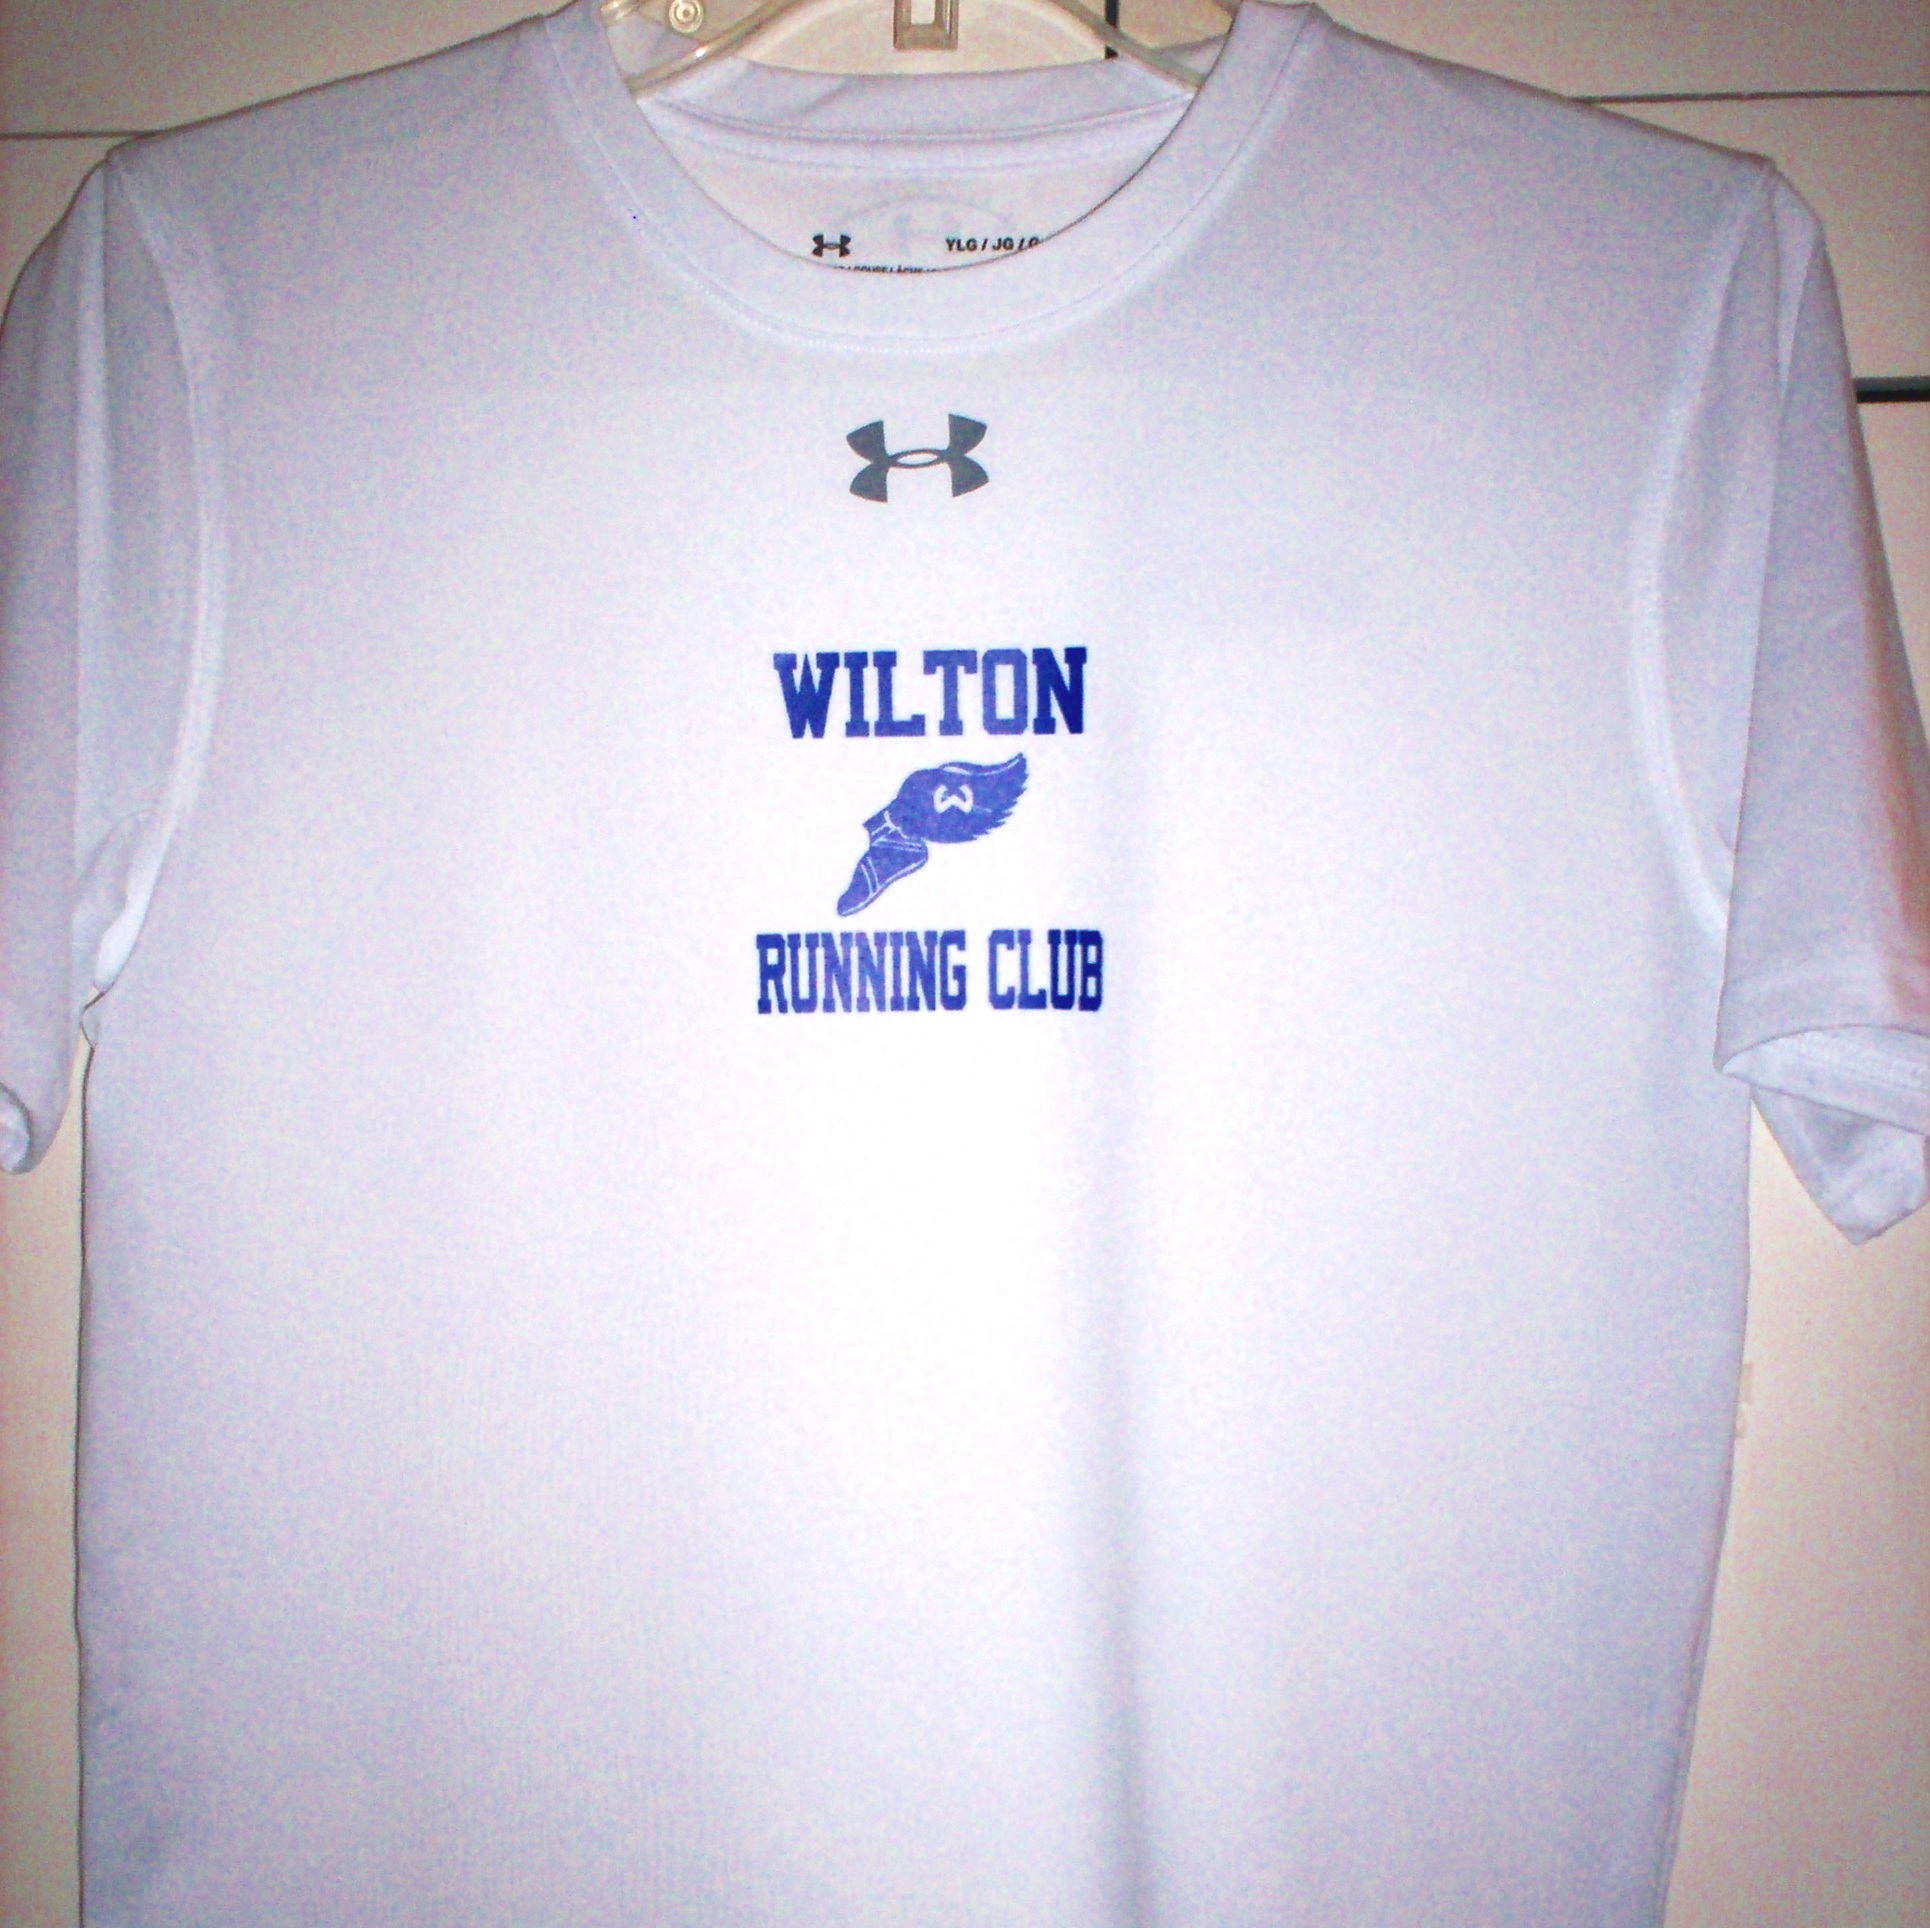 Wilton Running Club Tee-Shirt in Boys and Mens sizes